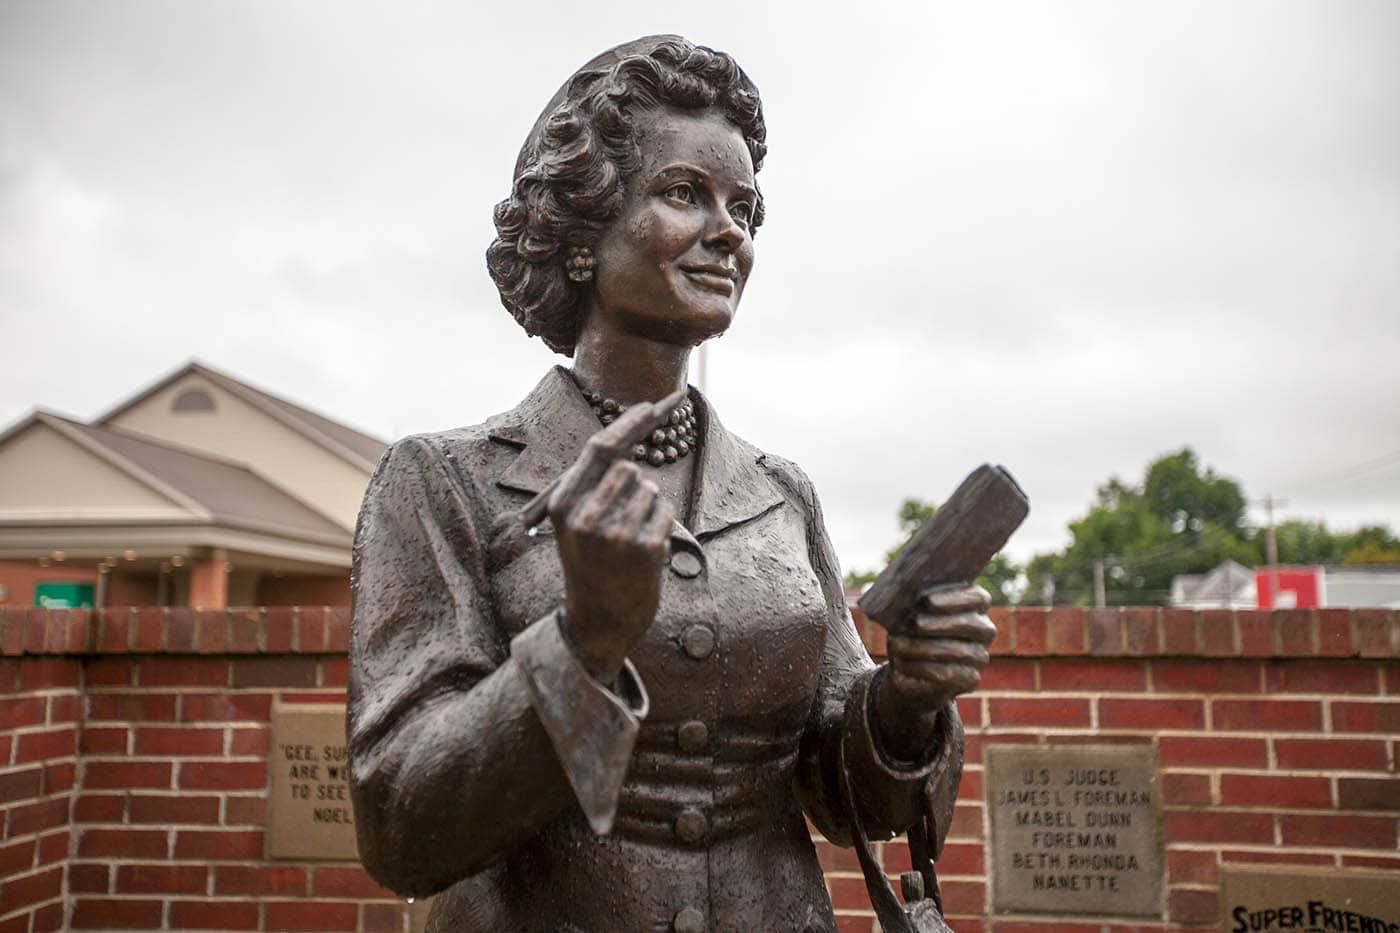 Bronze Lois Lane Statue in Metropolis, Illinois